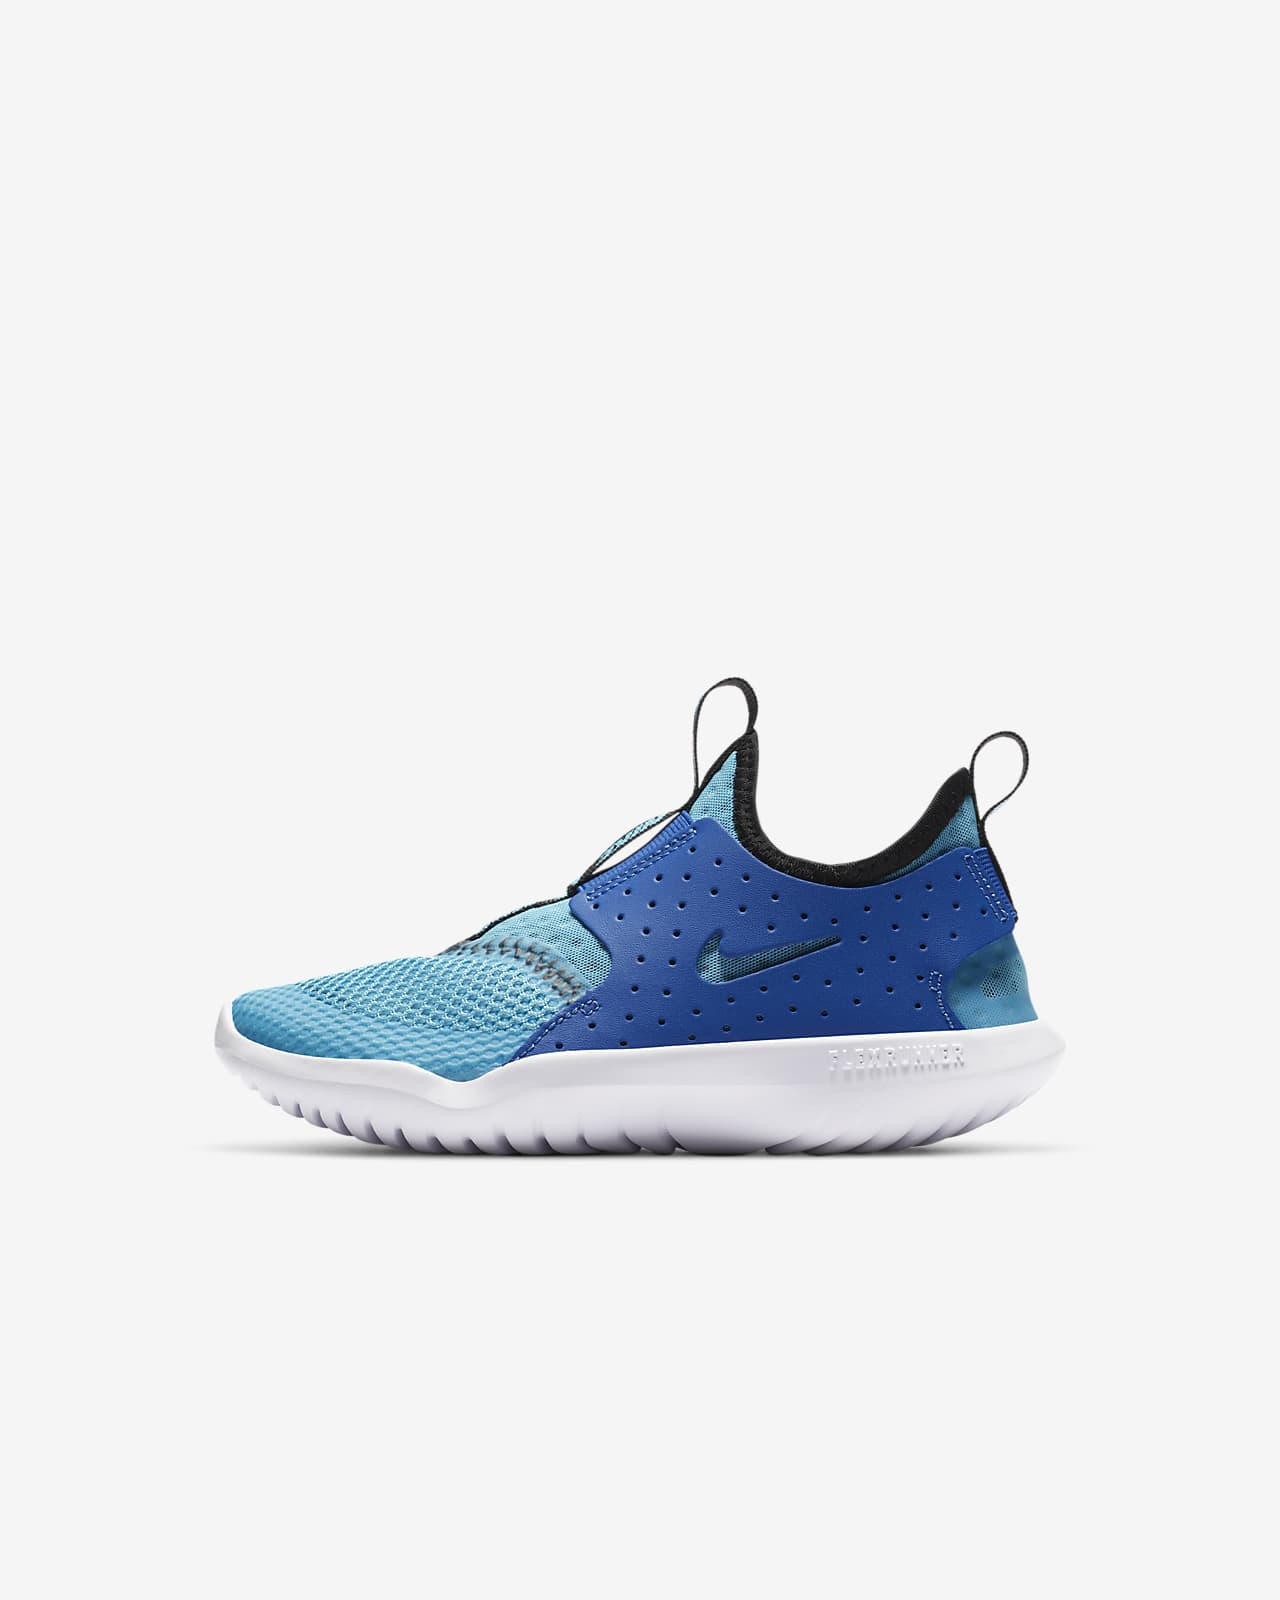 Nike Flex Runner Breathe (PS) 幼童运动童鞋